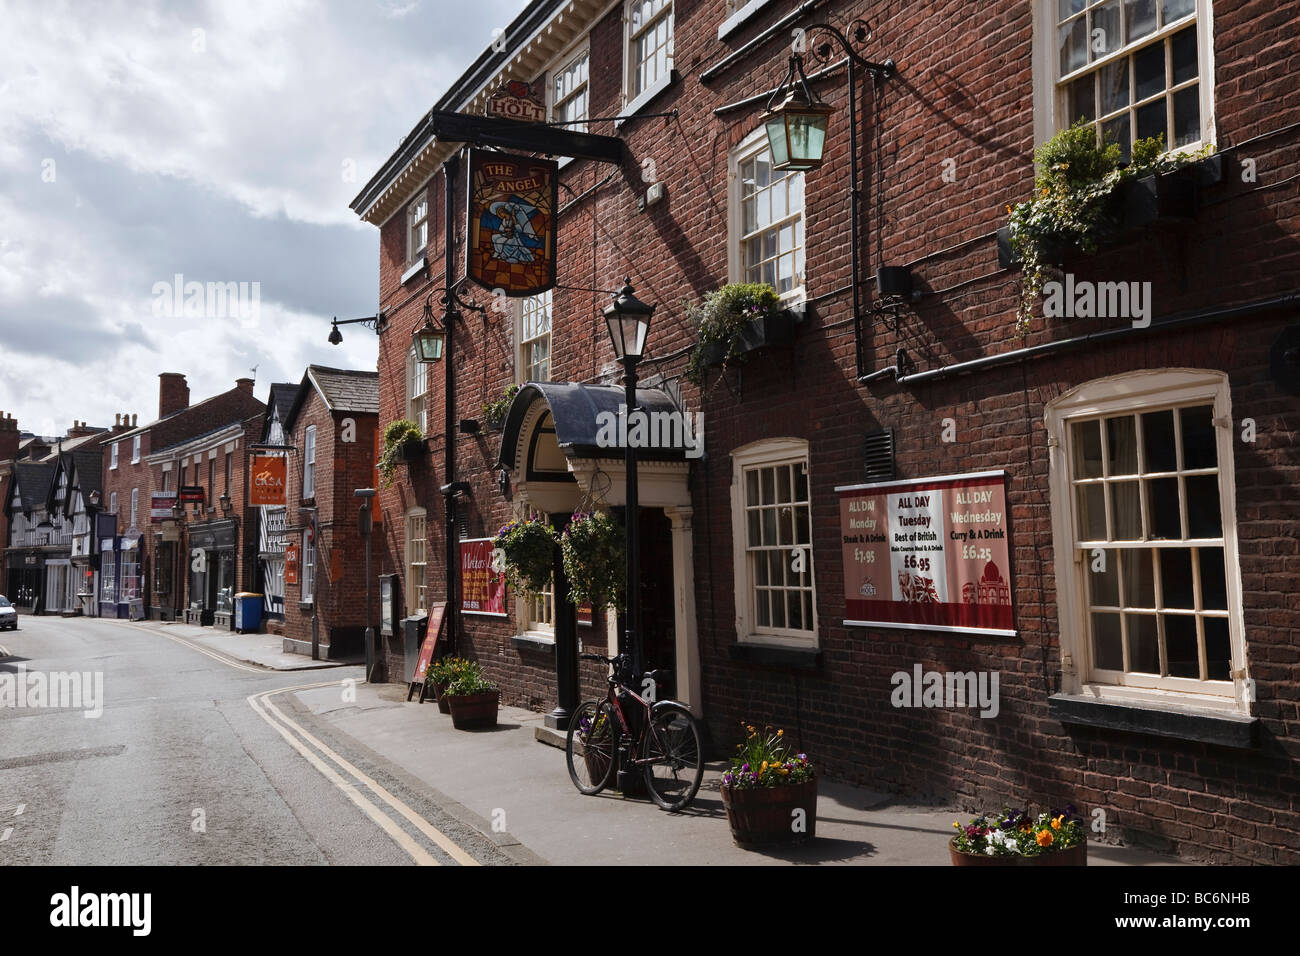 The Angel Hotel, King Street, Knutsford, Cheshire, England - Stock Image